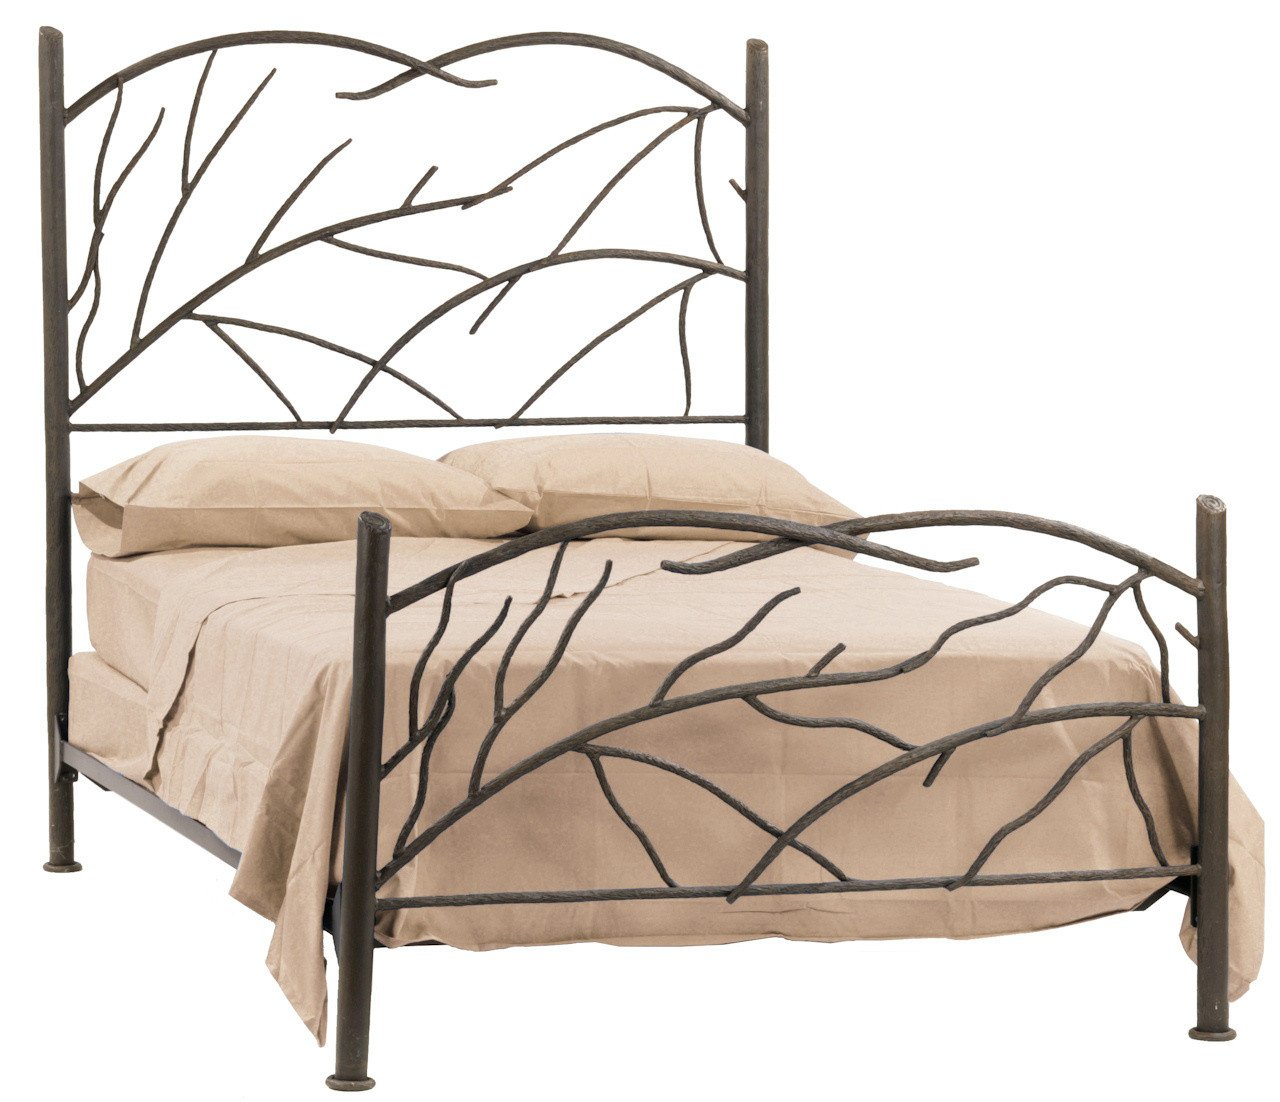 Norfork Full Bed Hand Rubbed Bronze - Stone County Bed Image